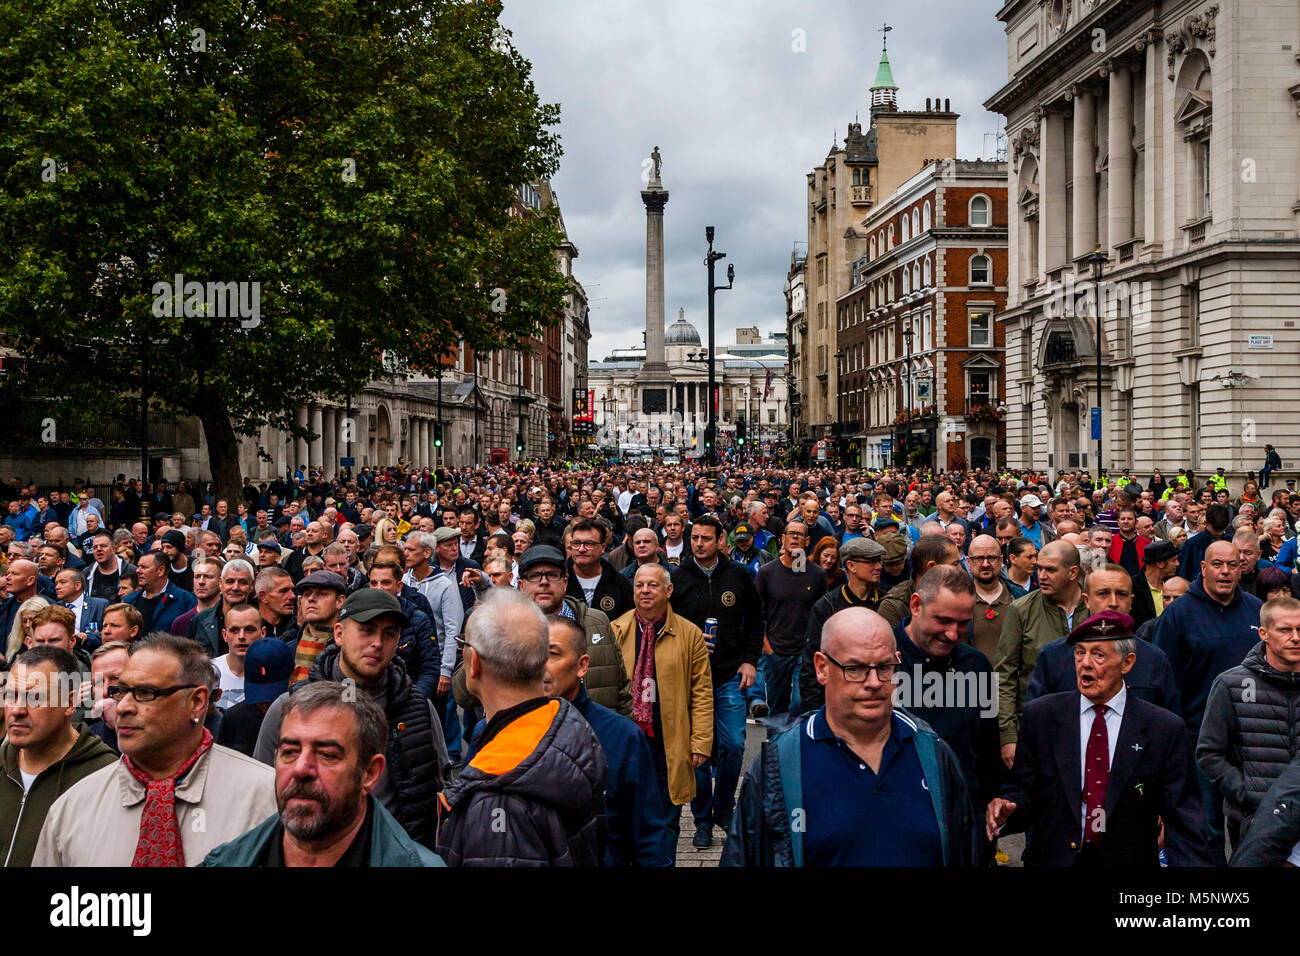 Football fans from across the UK marching against extremism under the banner of the FLA (football lads alliance), - Stock Image